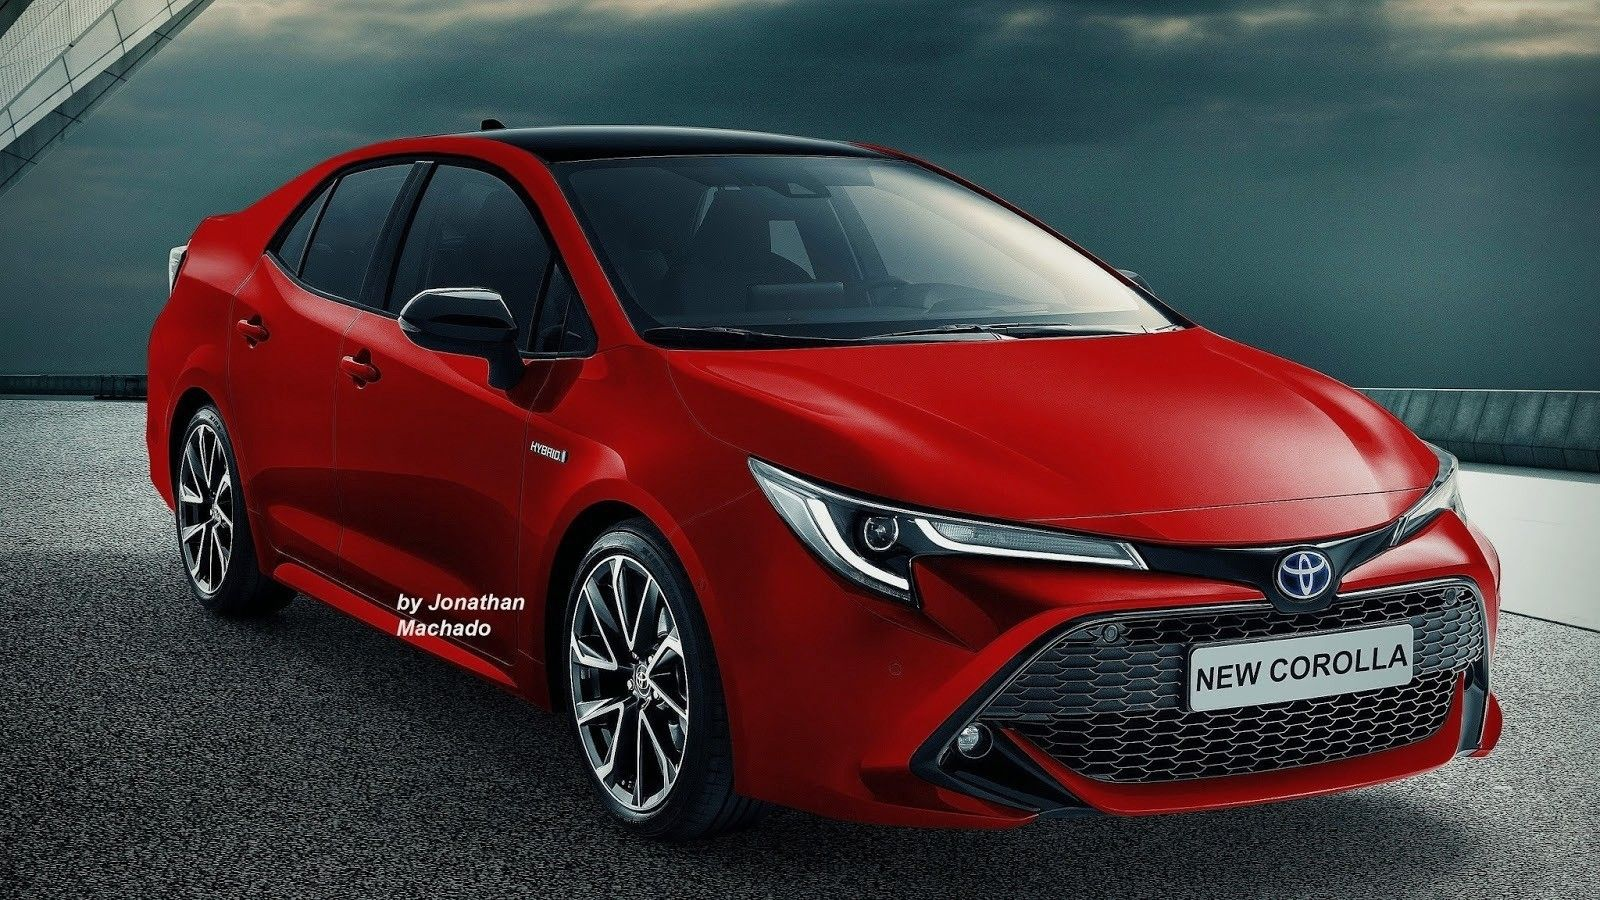 Toyota Avensis 2019 Price And Release Date Car Gallery Toyota Corolla Toyota Avensis Toyota